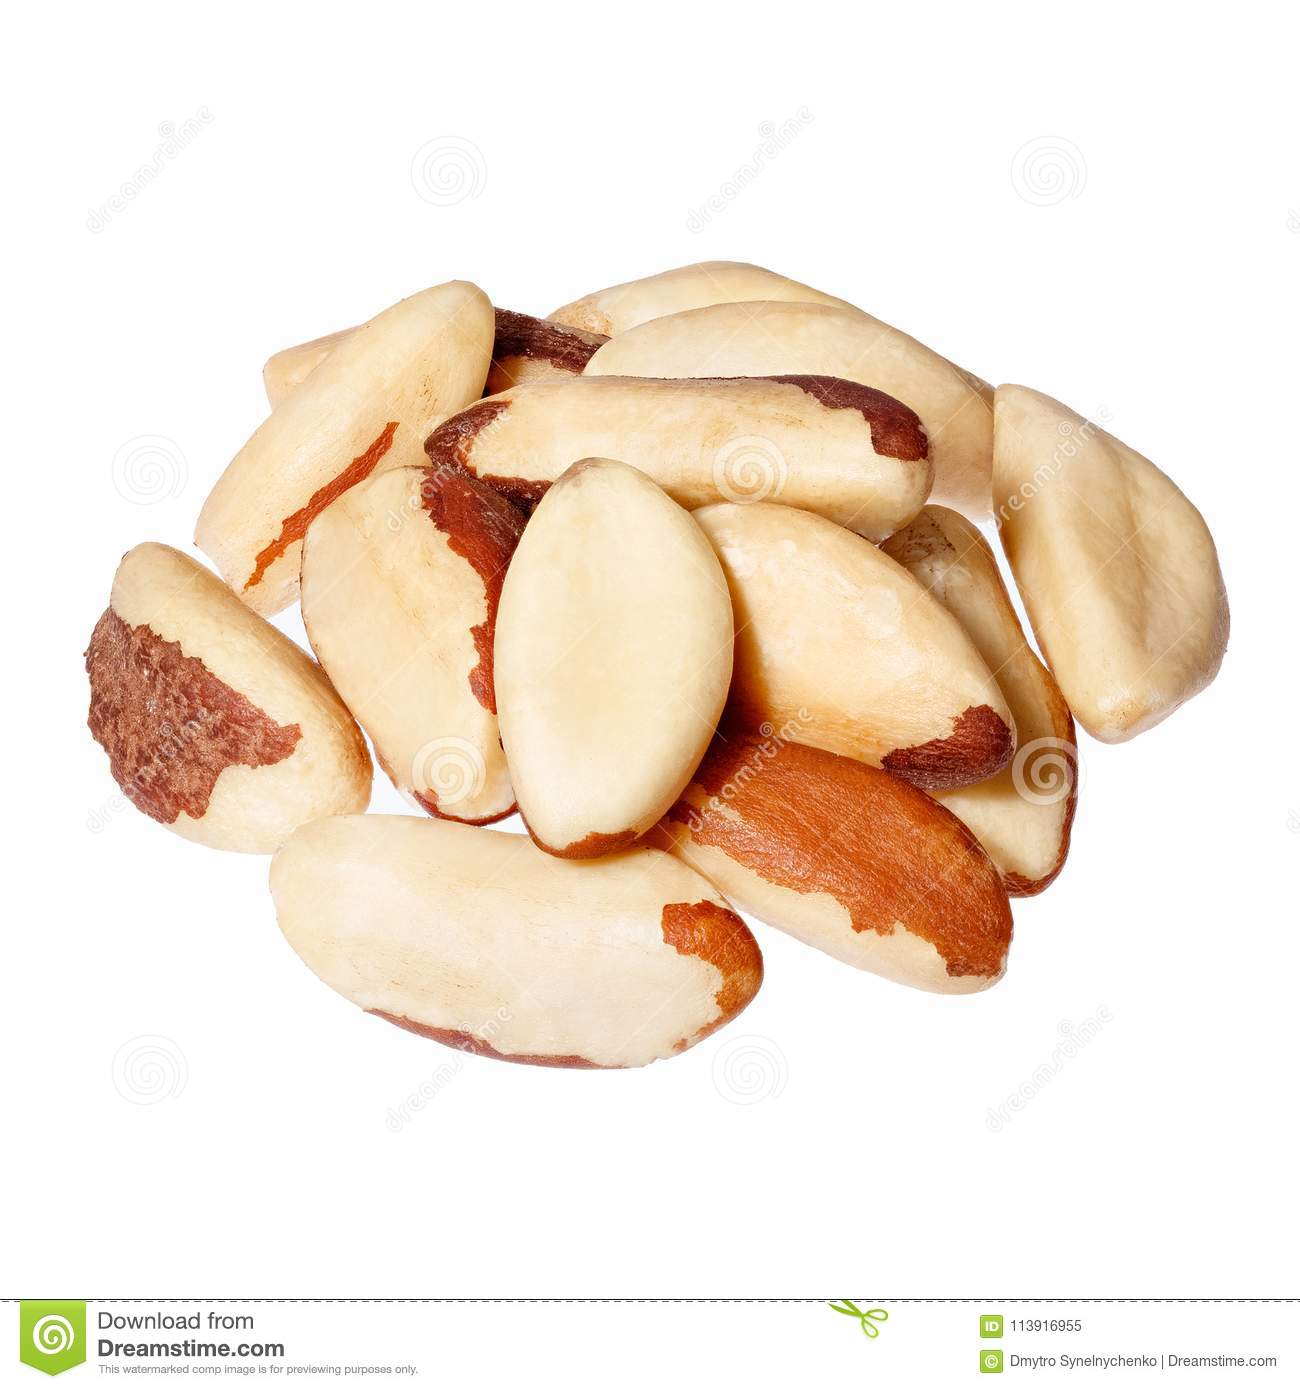 Brazil nuts on white background close-up.